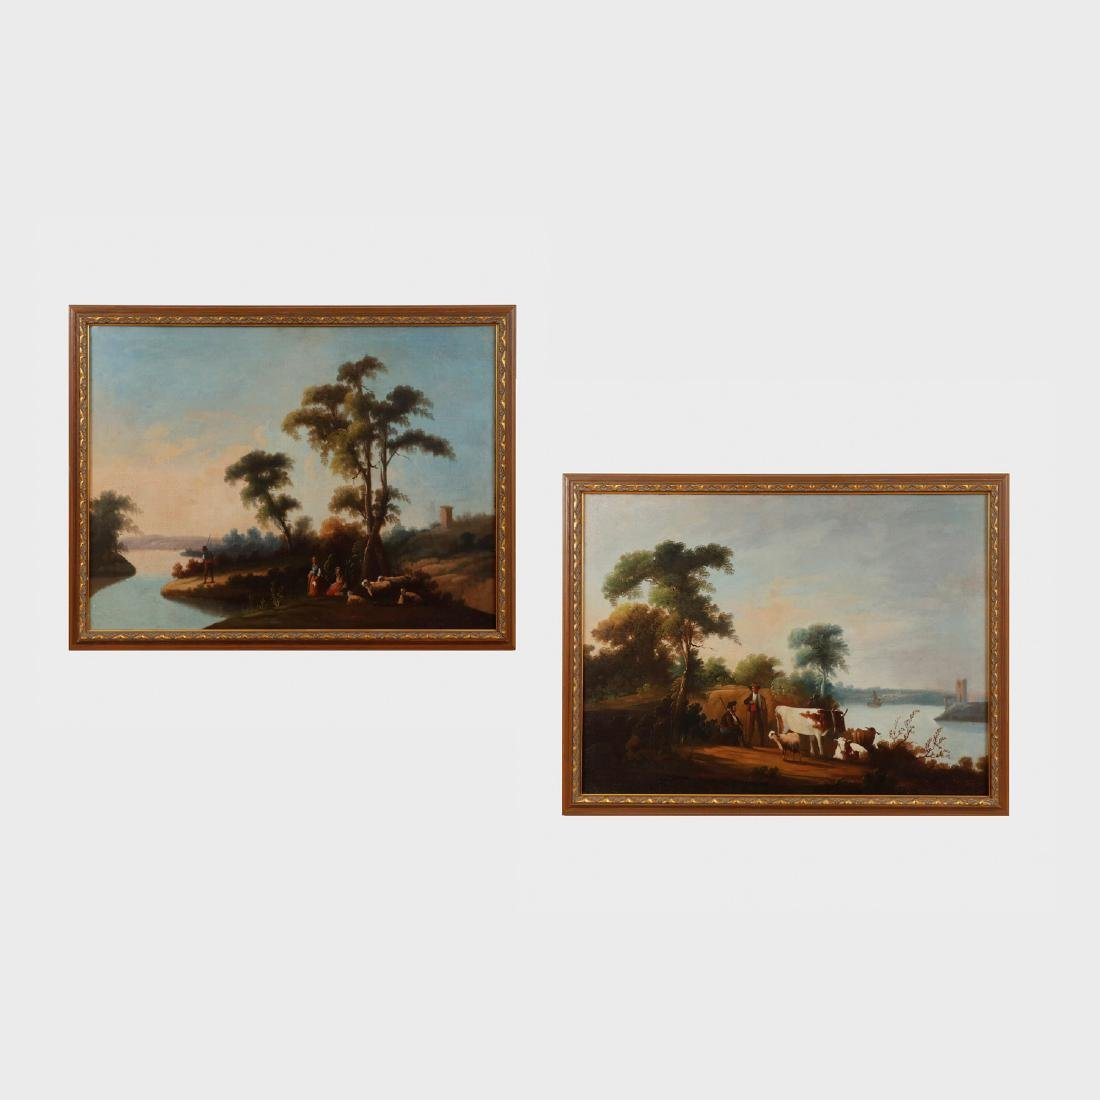 English School: Country Landscapes, Two Works